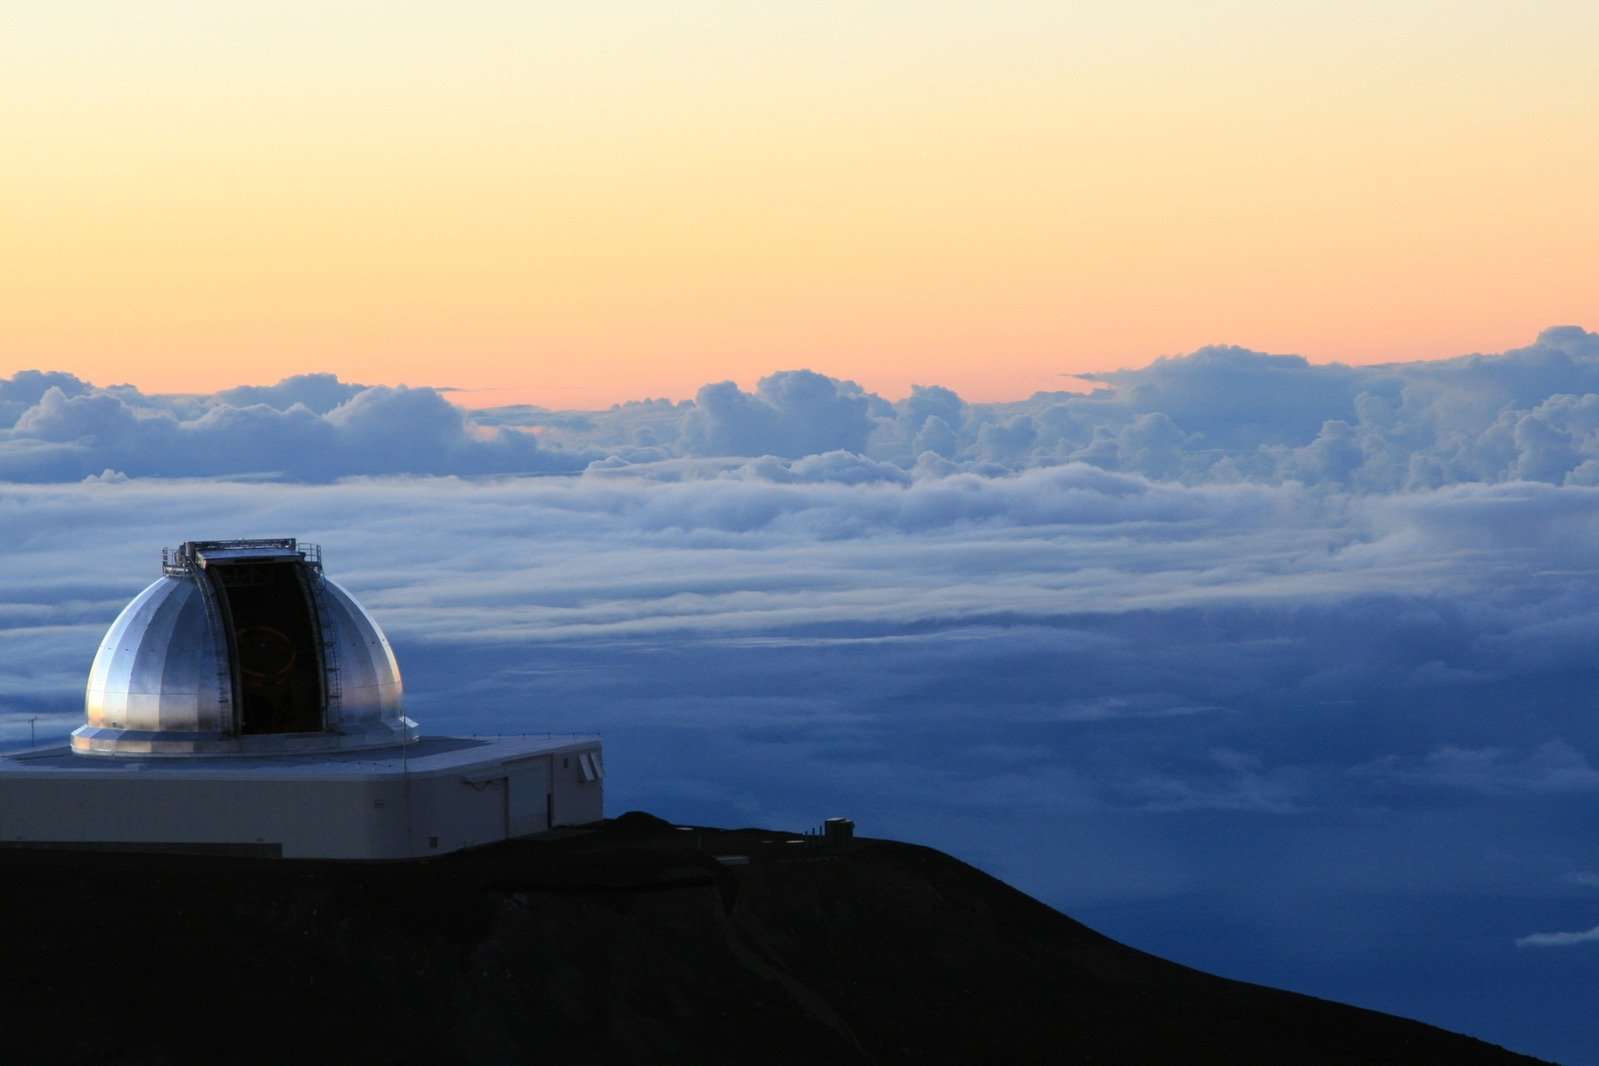 Astronomy uses state-of-the-art equipment